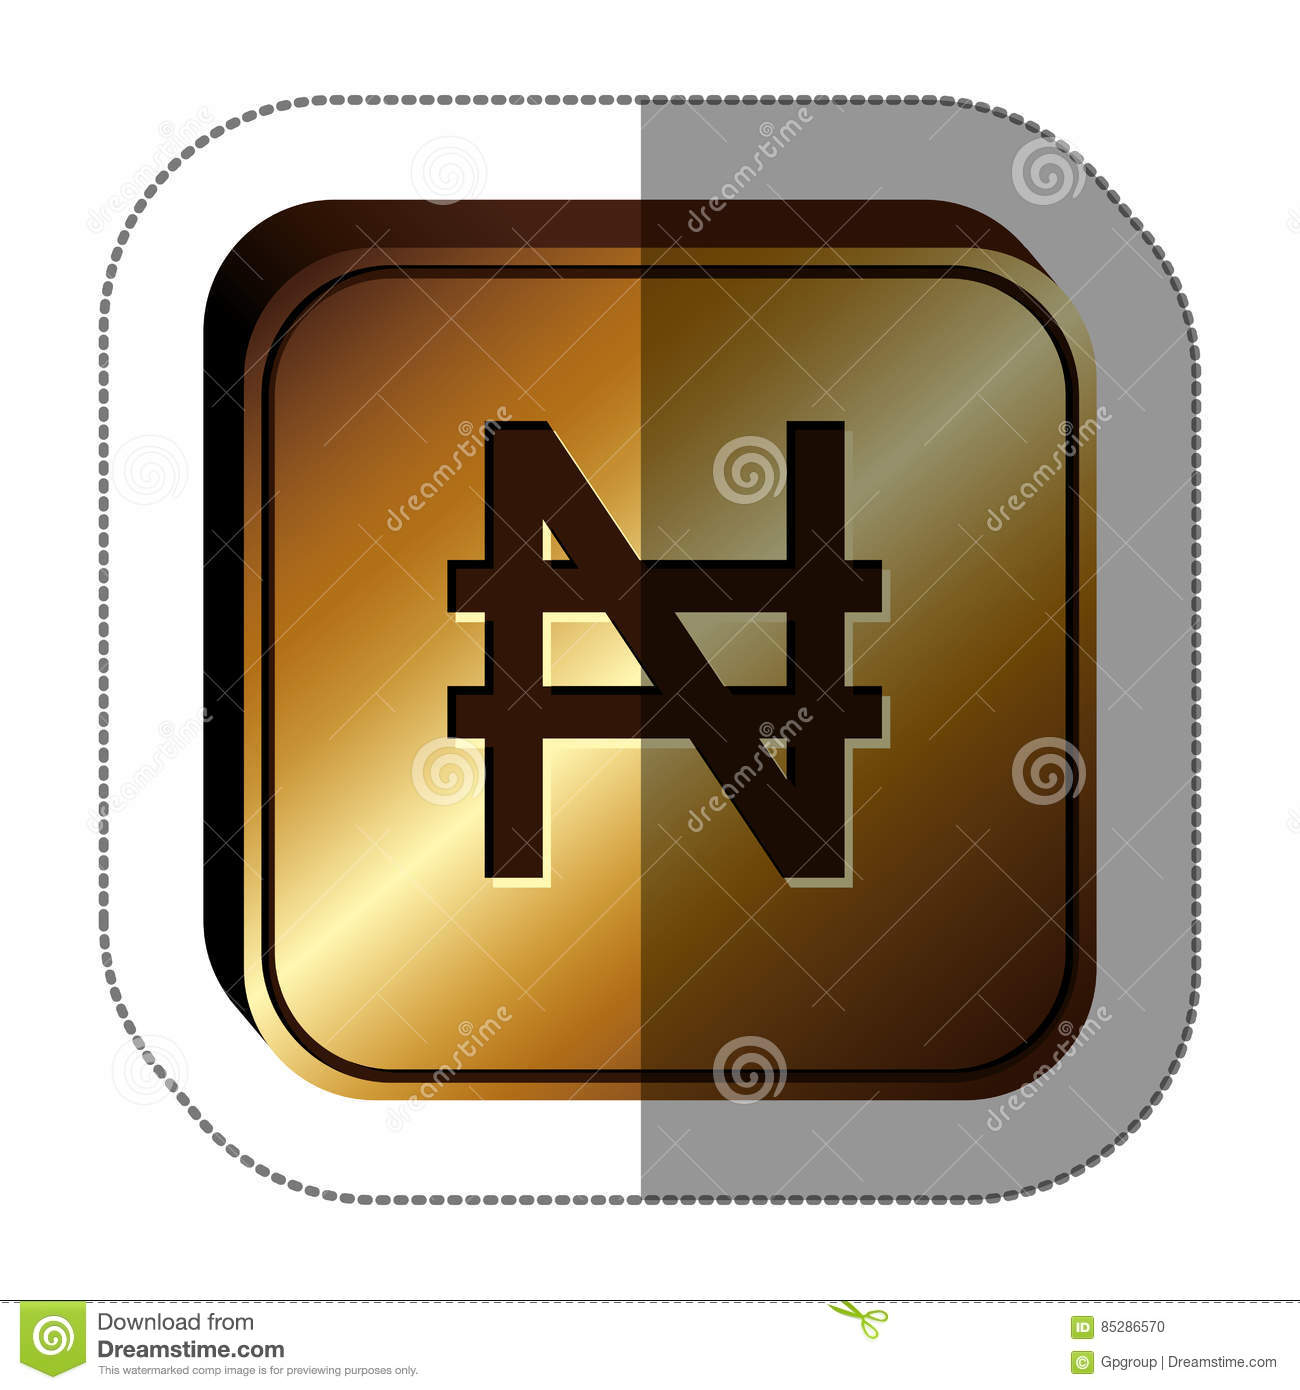 Sticker Golden Square With Currency Symbol Of Nigerian Naira Stock